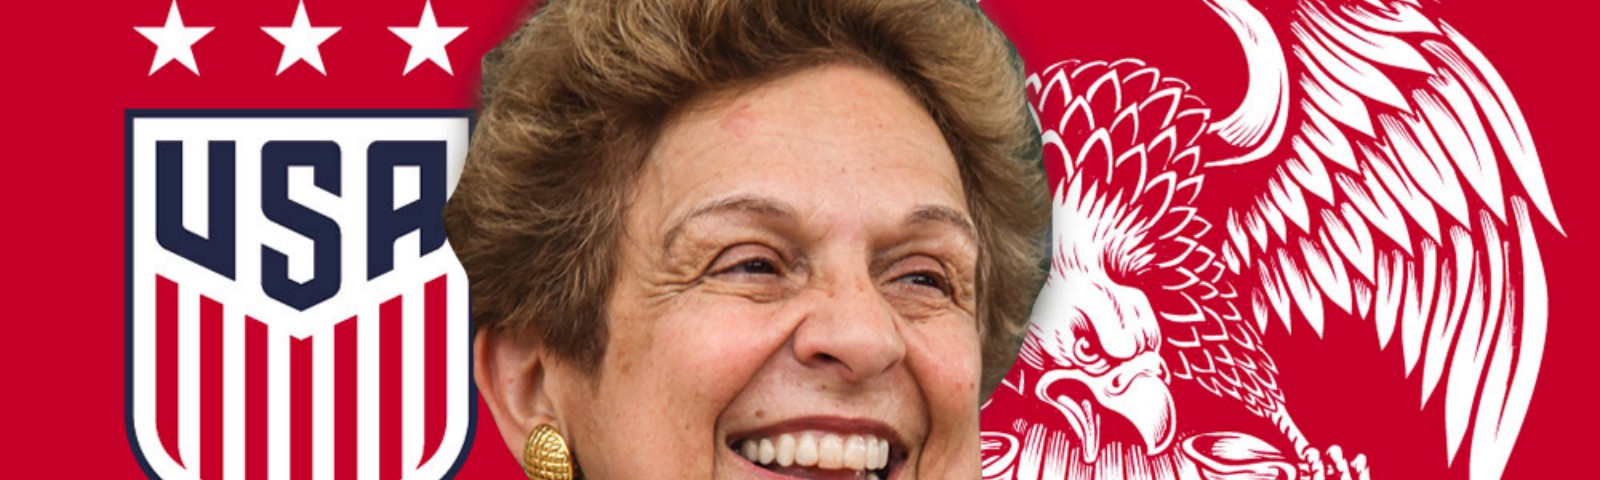 Donna Shalala's conflicted interest at US Soccer exposed as